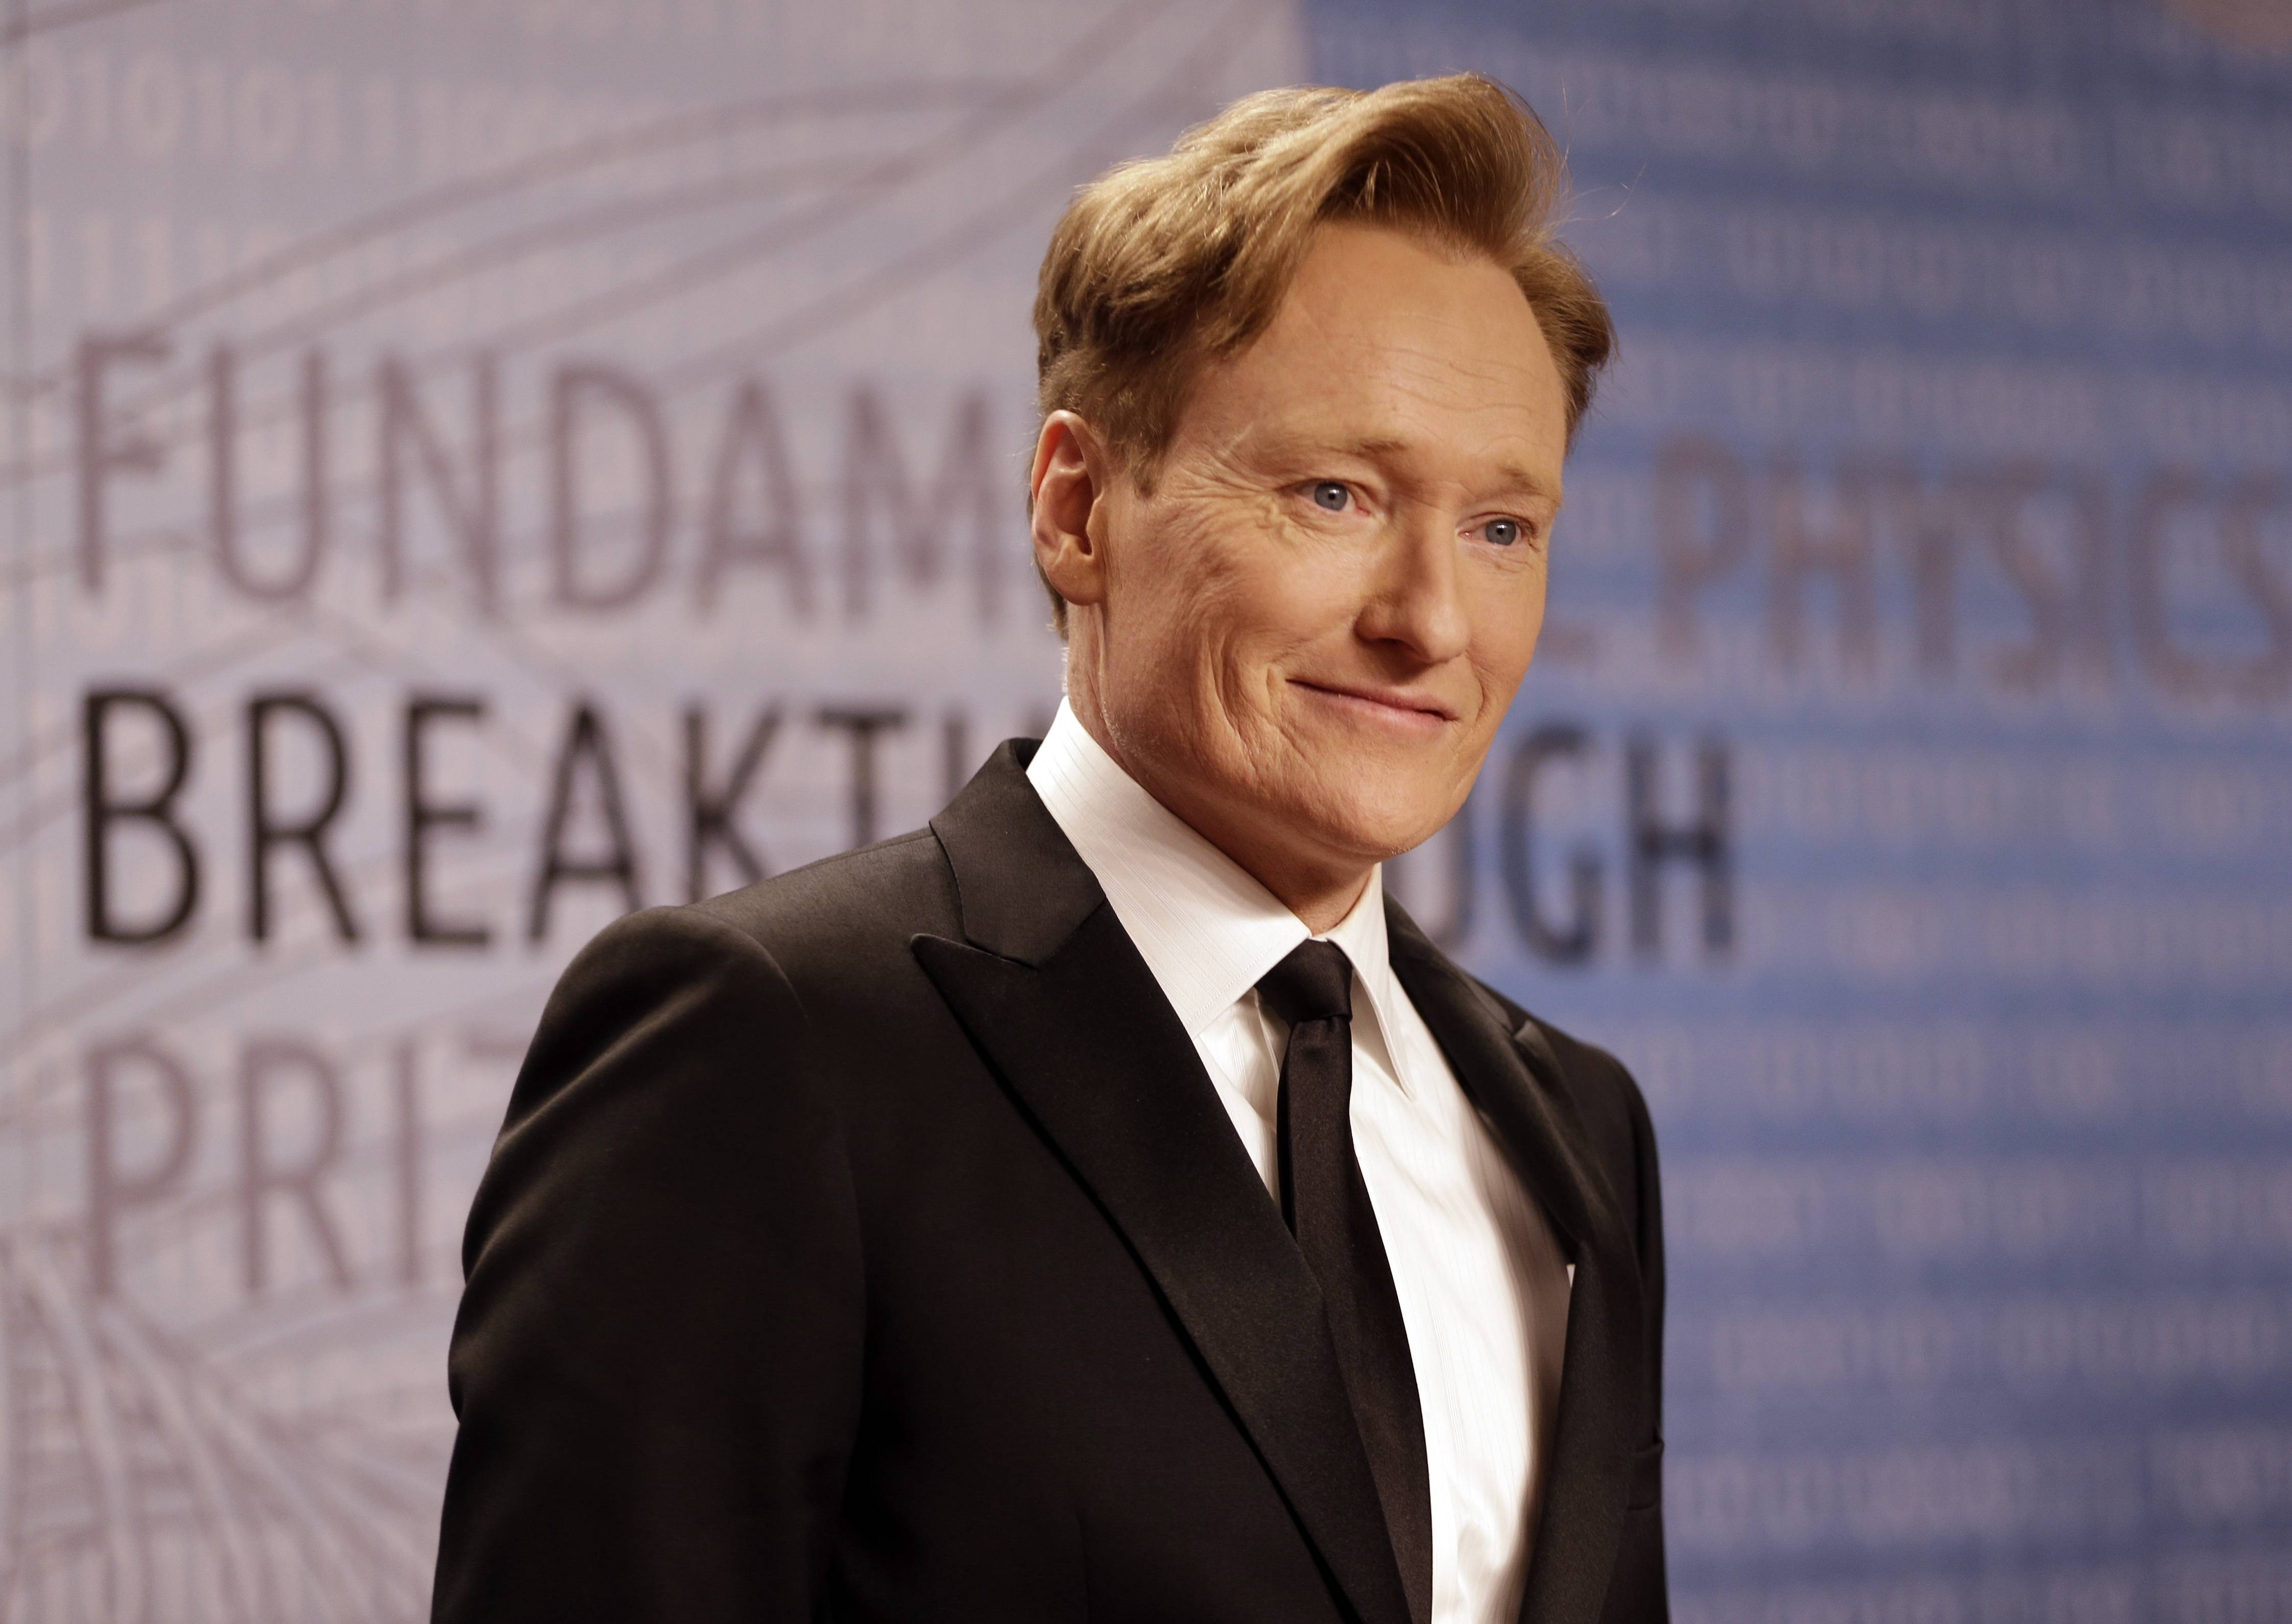 Conan O'Brien announced he's hosting this year's MTV Movie Awards. The annual movie celebration that honors winners with popcorn-shaped trophies is scheduled for April 13, 2014 at the Nokia Theatre in downtown Los Angeles.